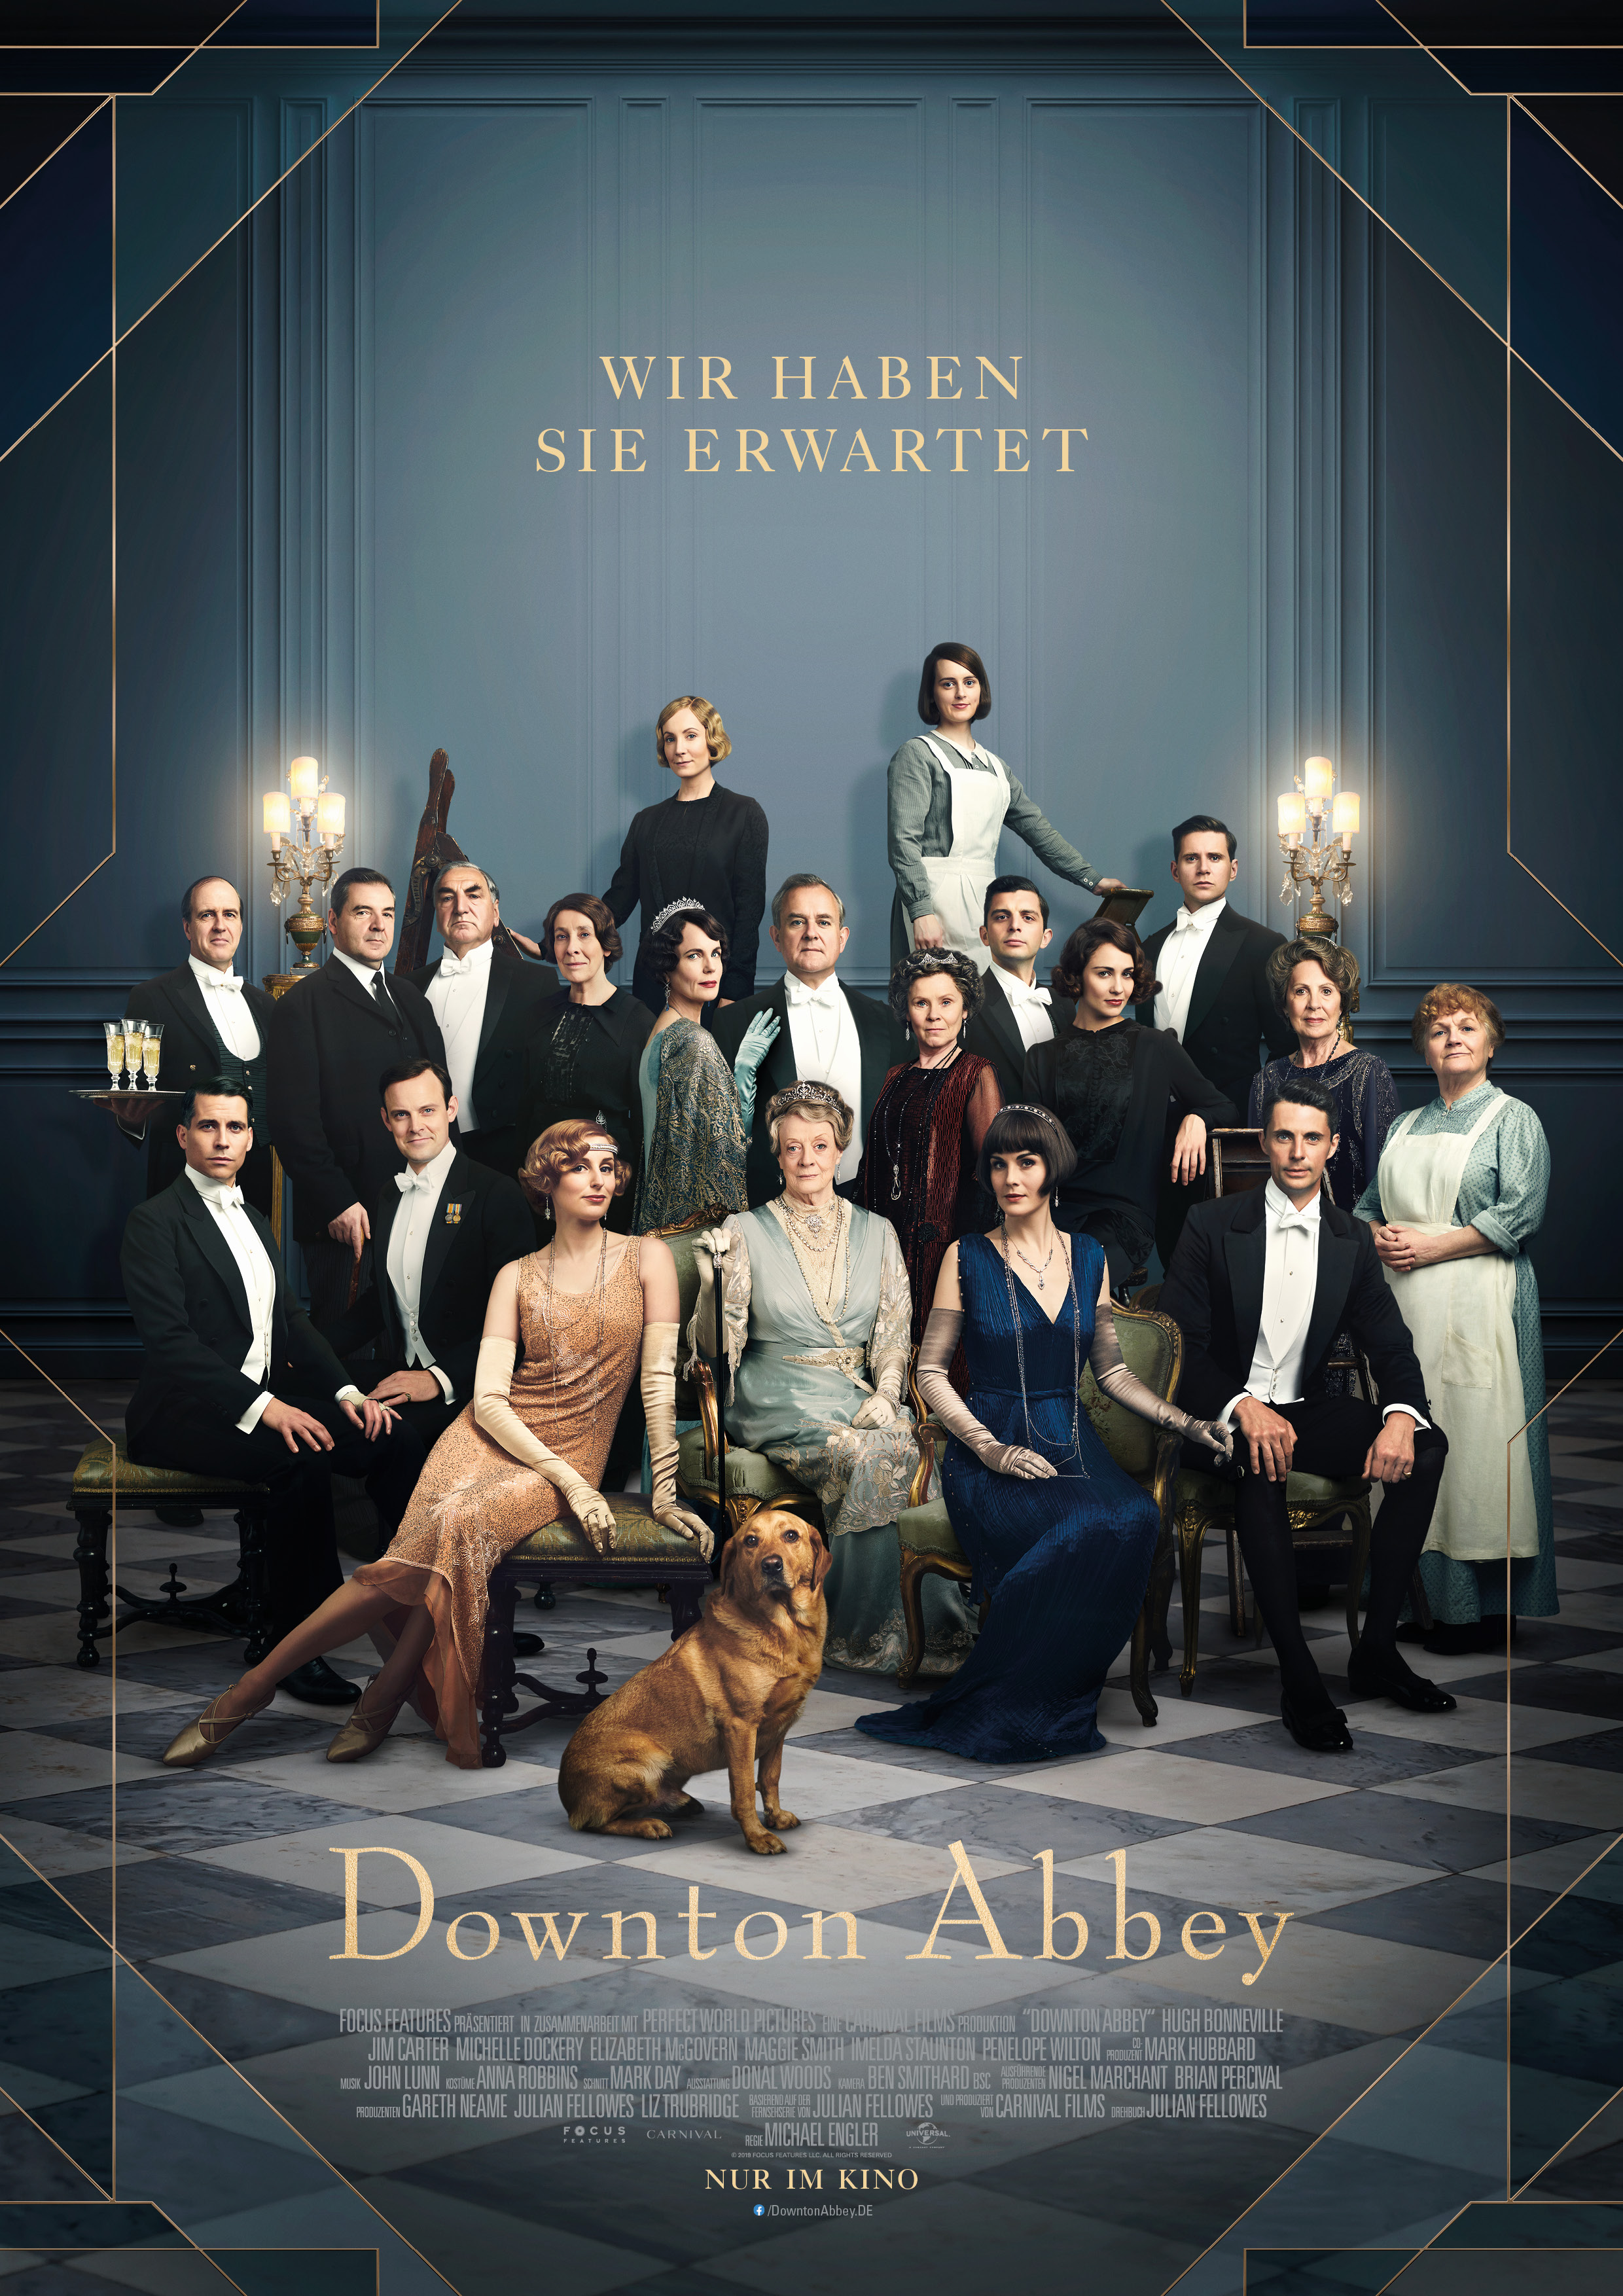 Plakat des Films: Downton Abbey